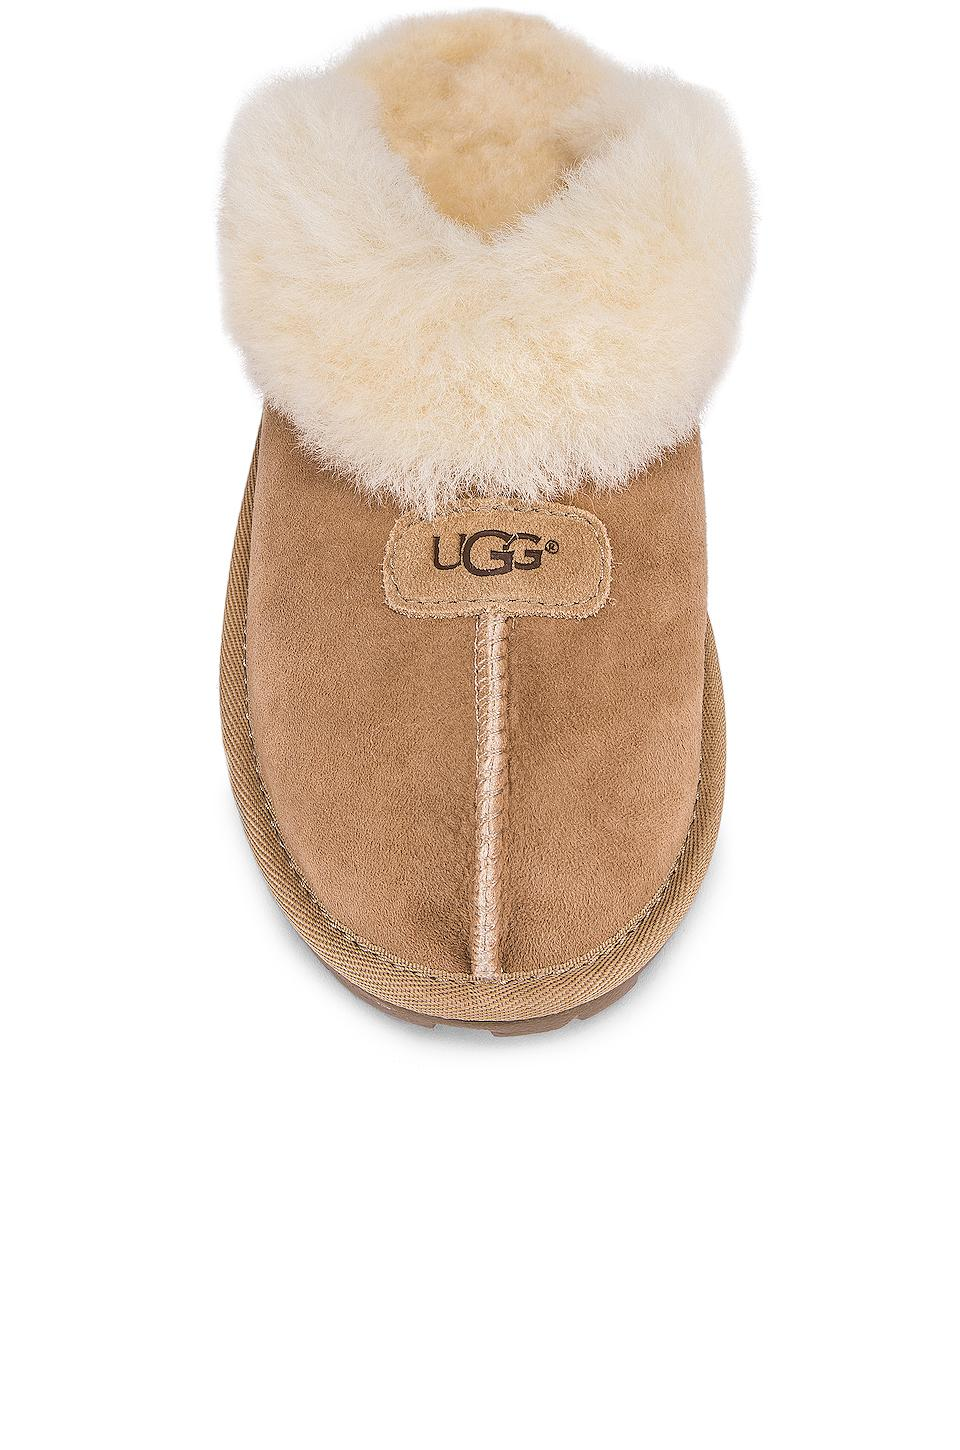 9f1d2a91f7c Lyst - UGG Coquette Slipper in Natural